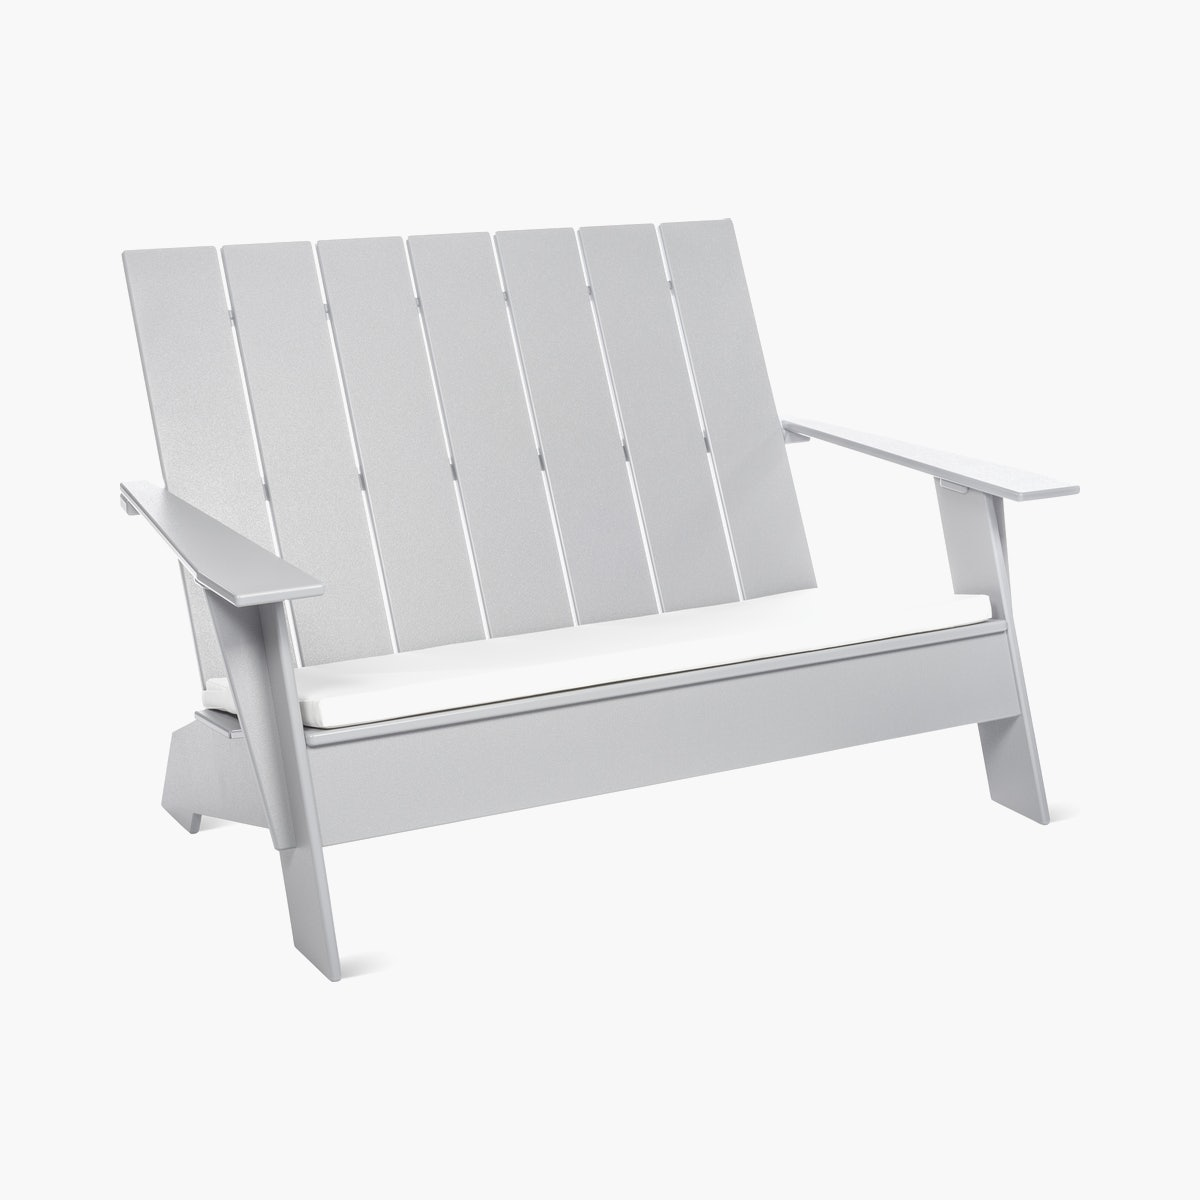 Adirondack Bench Cushion